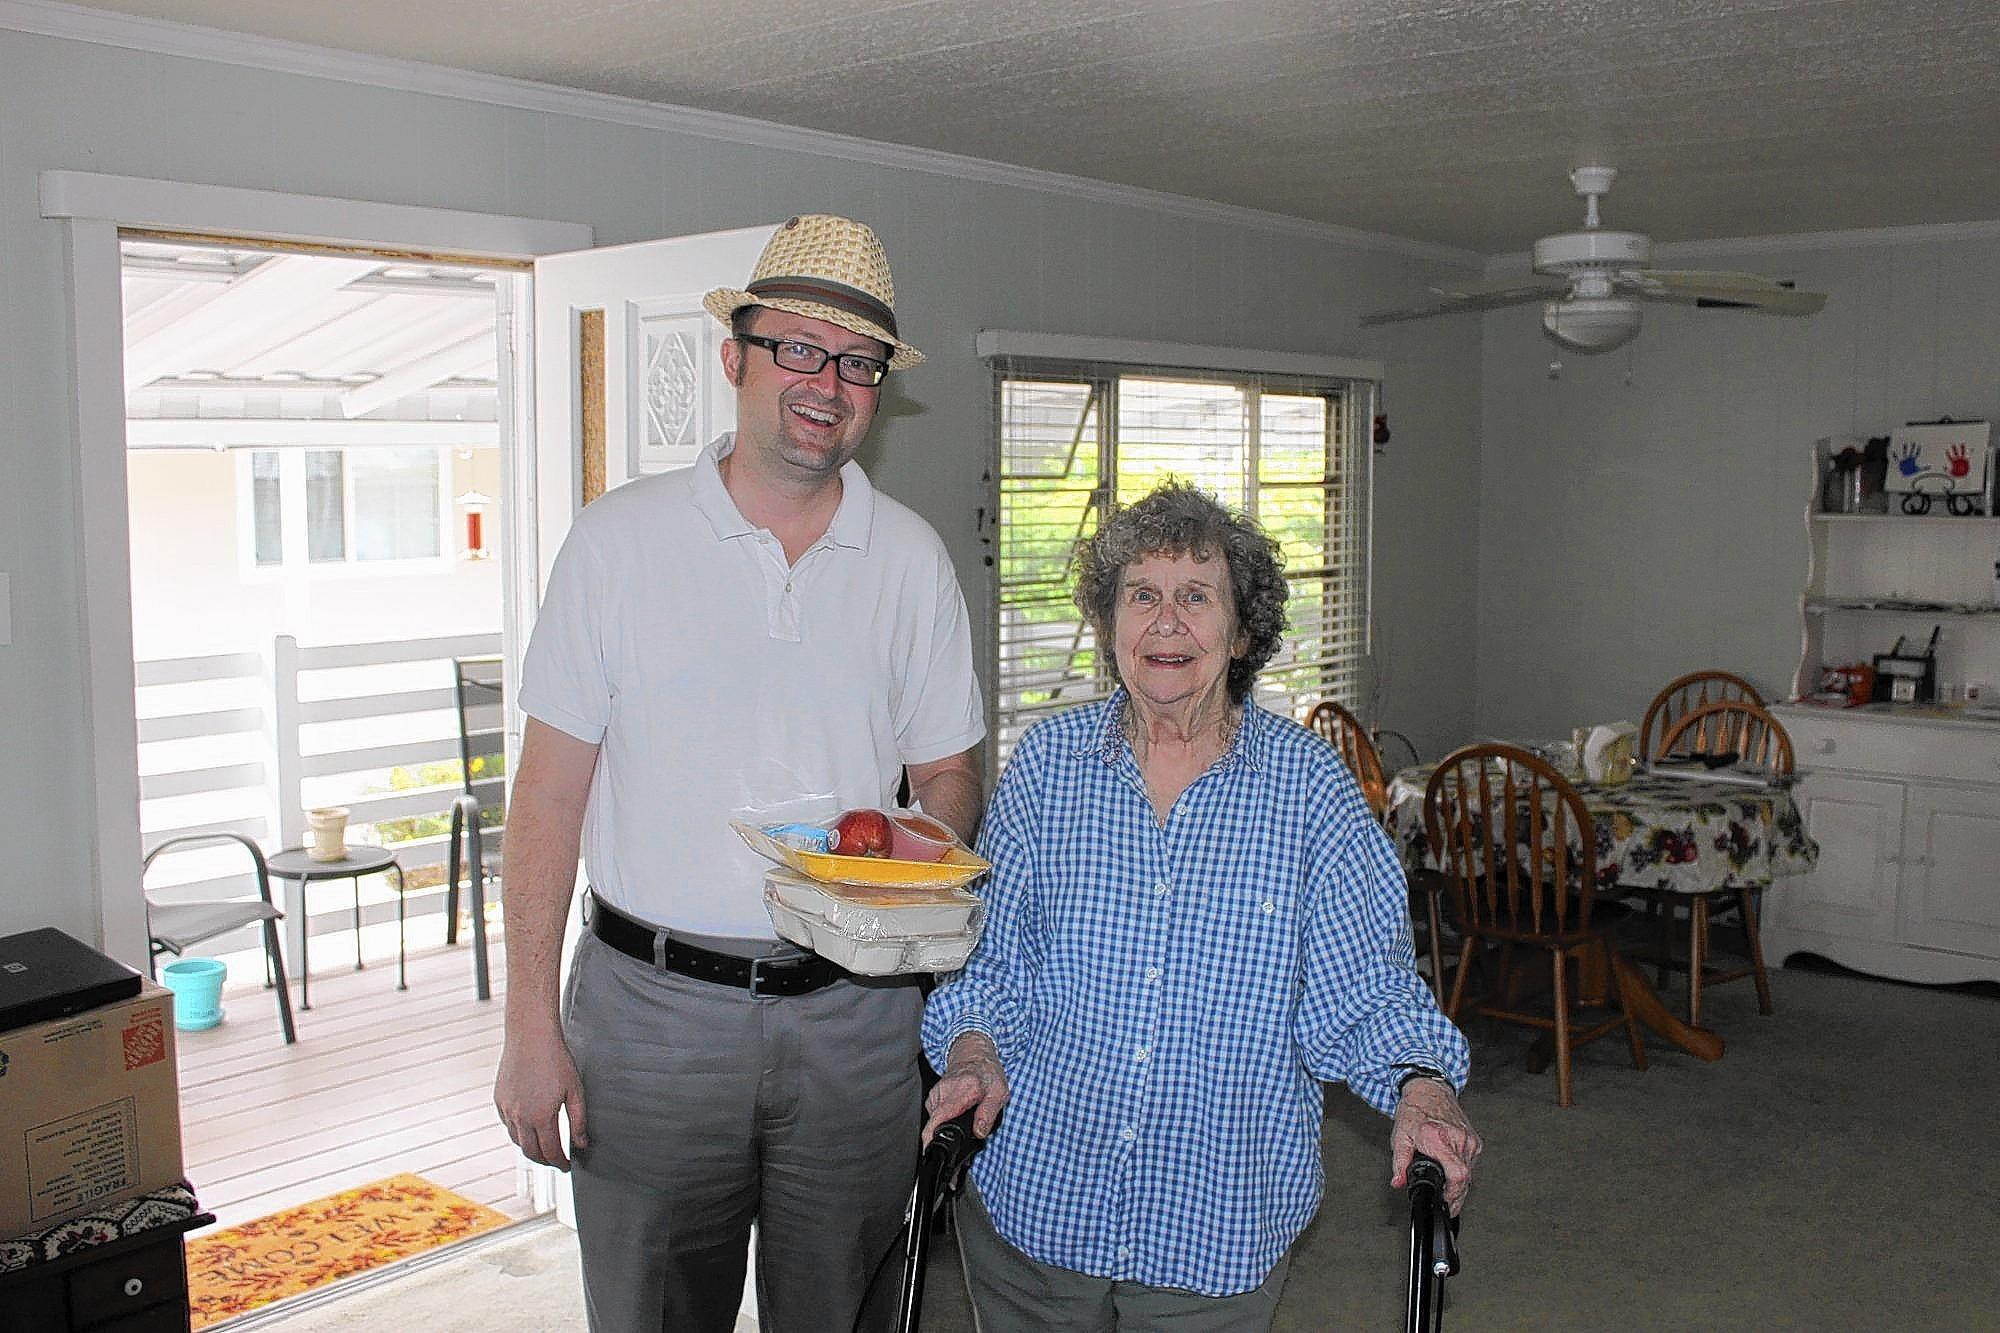 Huntington Beach Mayor Matthew Harper, left, helped deliver meals to homebound seniors as part of the Meals on Wheels program's Community Champions Week.